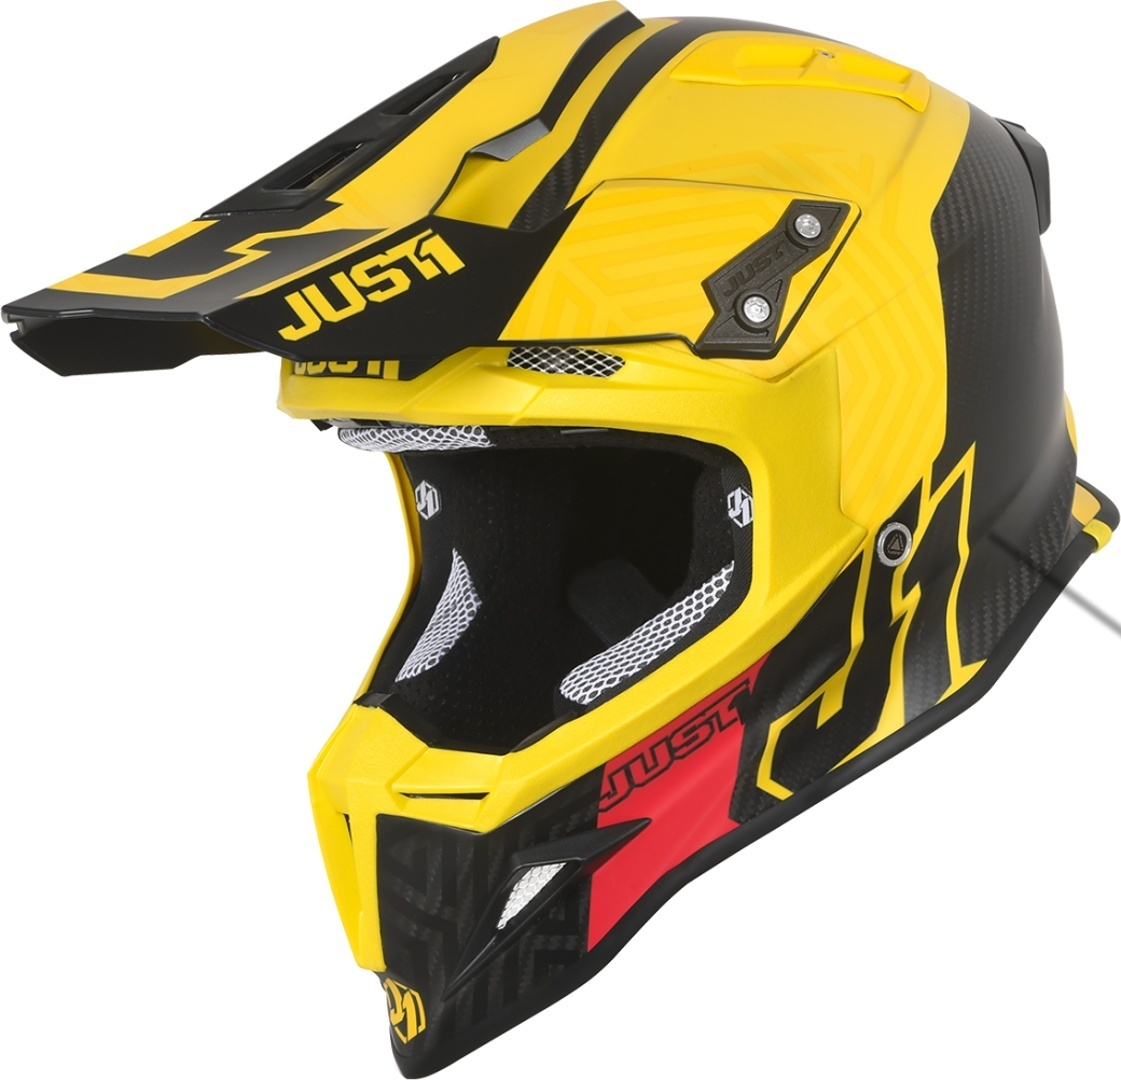 Just1 J12 Syncro Carbon Motocross Helm, schwarz-gelb, Größe XS, schwarz-gelb, Größe XS